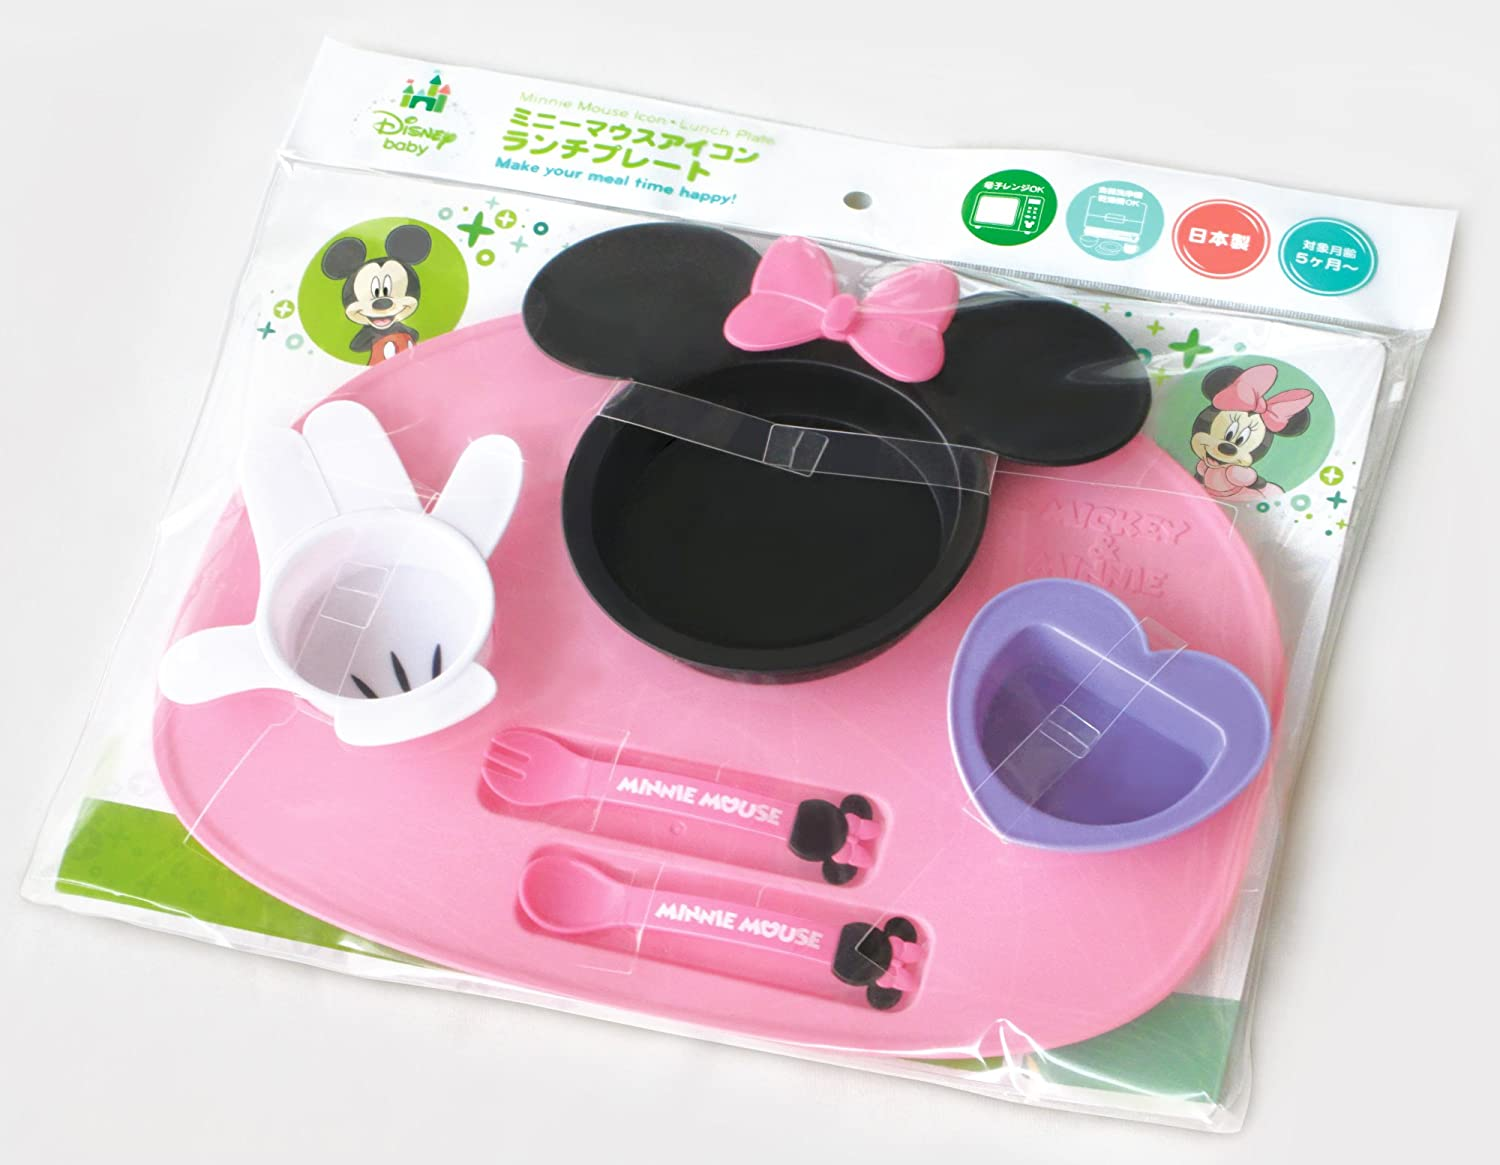 Disney Minnie Mouse Icon Lunch Plate Pink Microwave Allowed Polypropylene Jp Feeding Baby